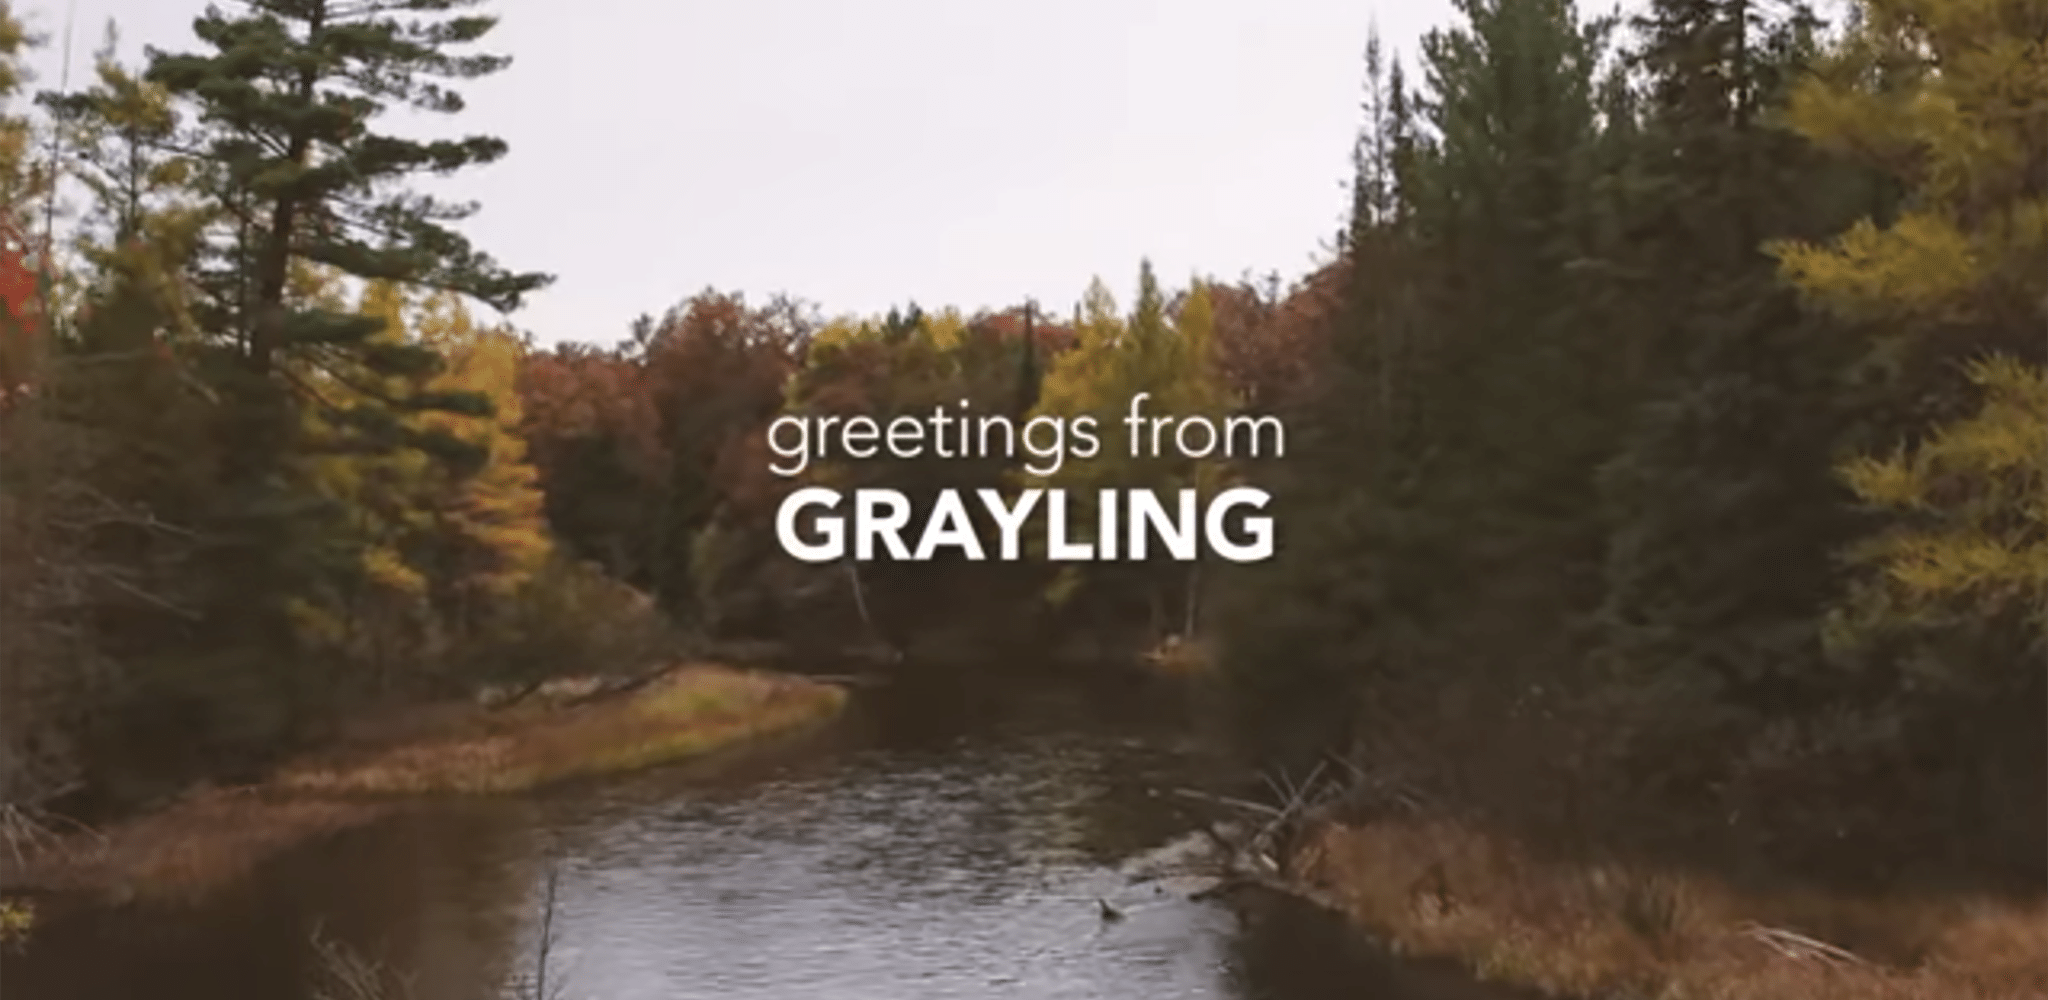 Grayling, Michigan: Year-Round Outdoor Fun